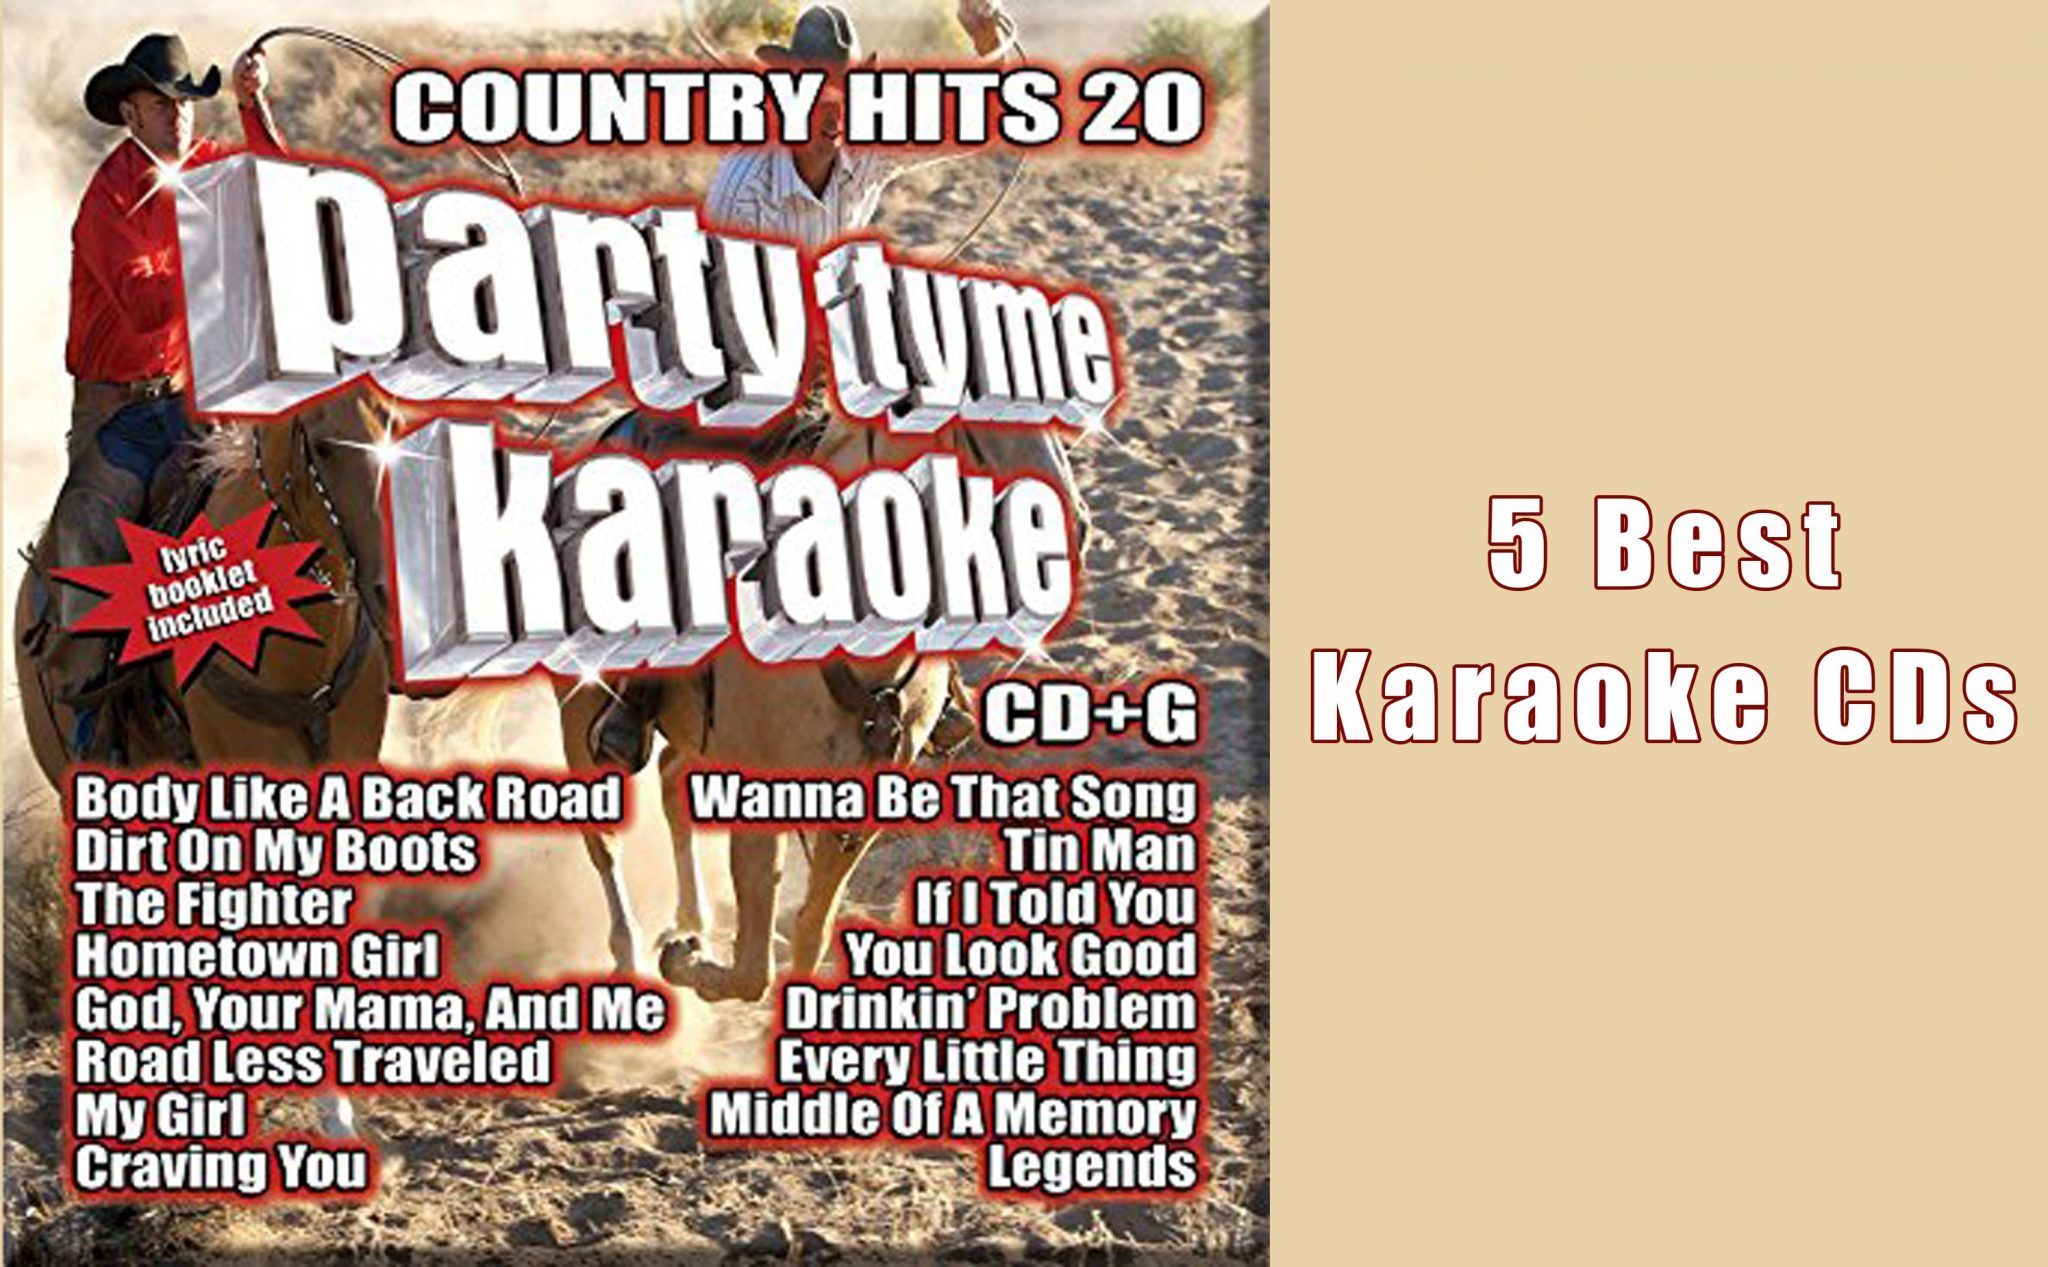 Want somebody to love karaoke